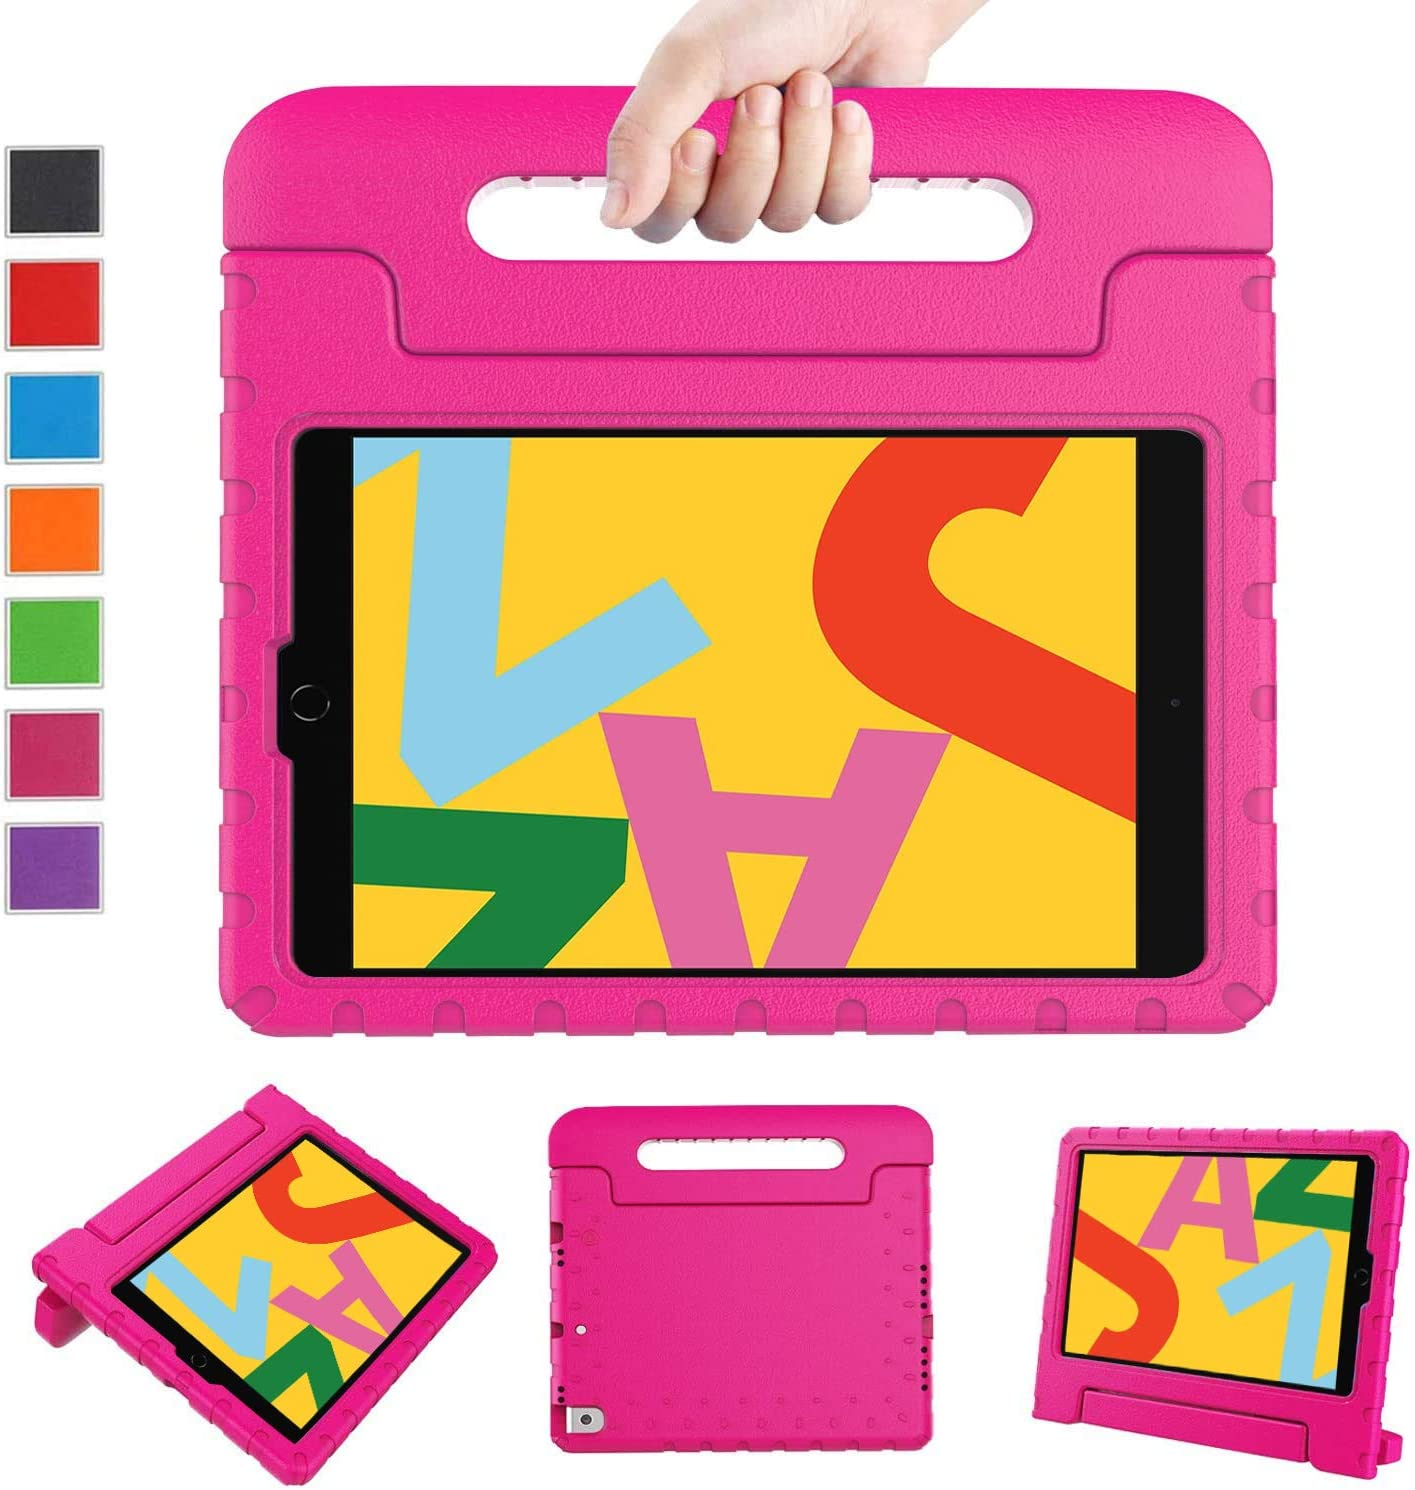 "LTROP Case for New iPad 10.2 2019 - iPad 7th Generation Case, iPad 7th Gen 10.2-inch Shock Proof Light Weight Handle Stand Kids Case for Apple iPad 10.2"" 2019 Latest Model and Air 3 - Hot Pink"